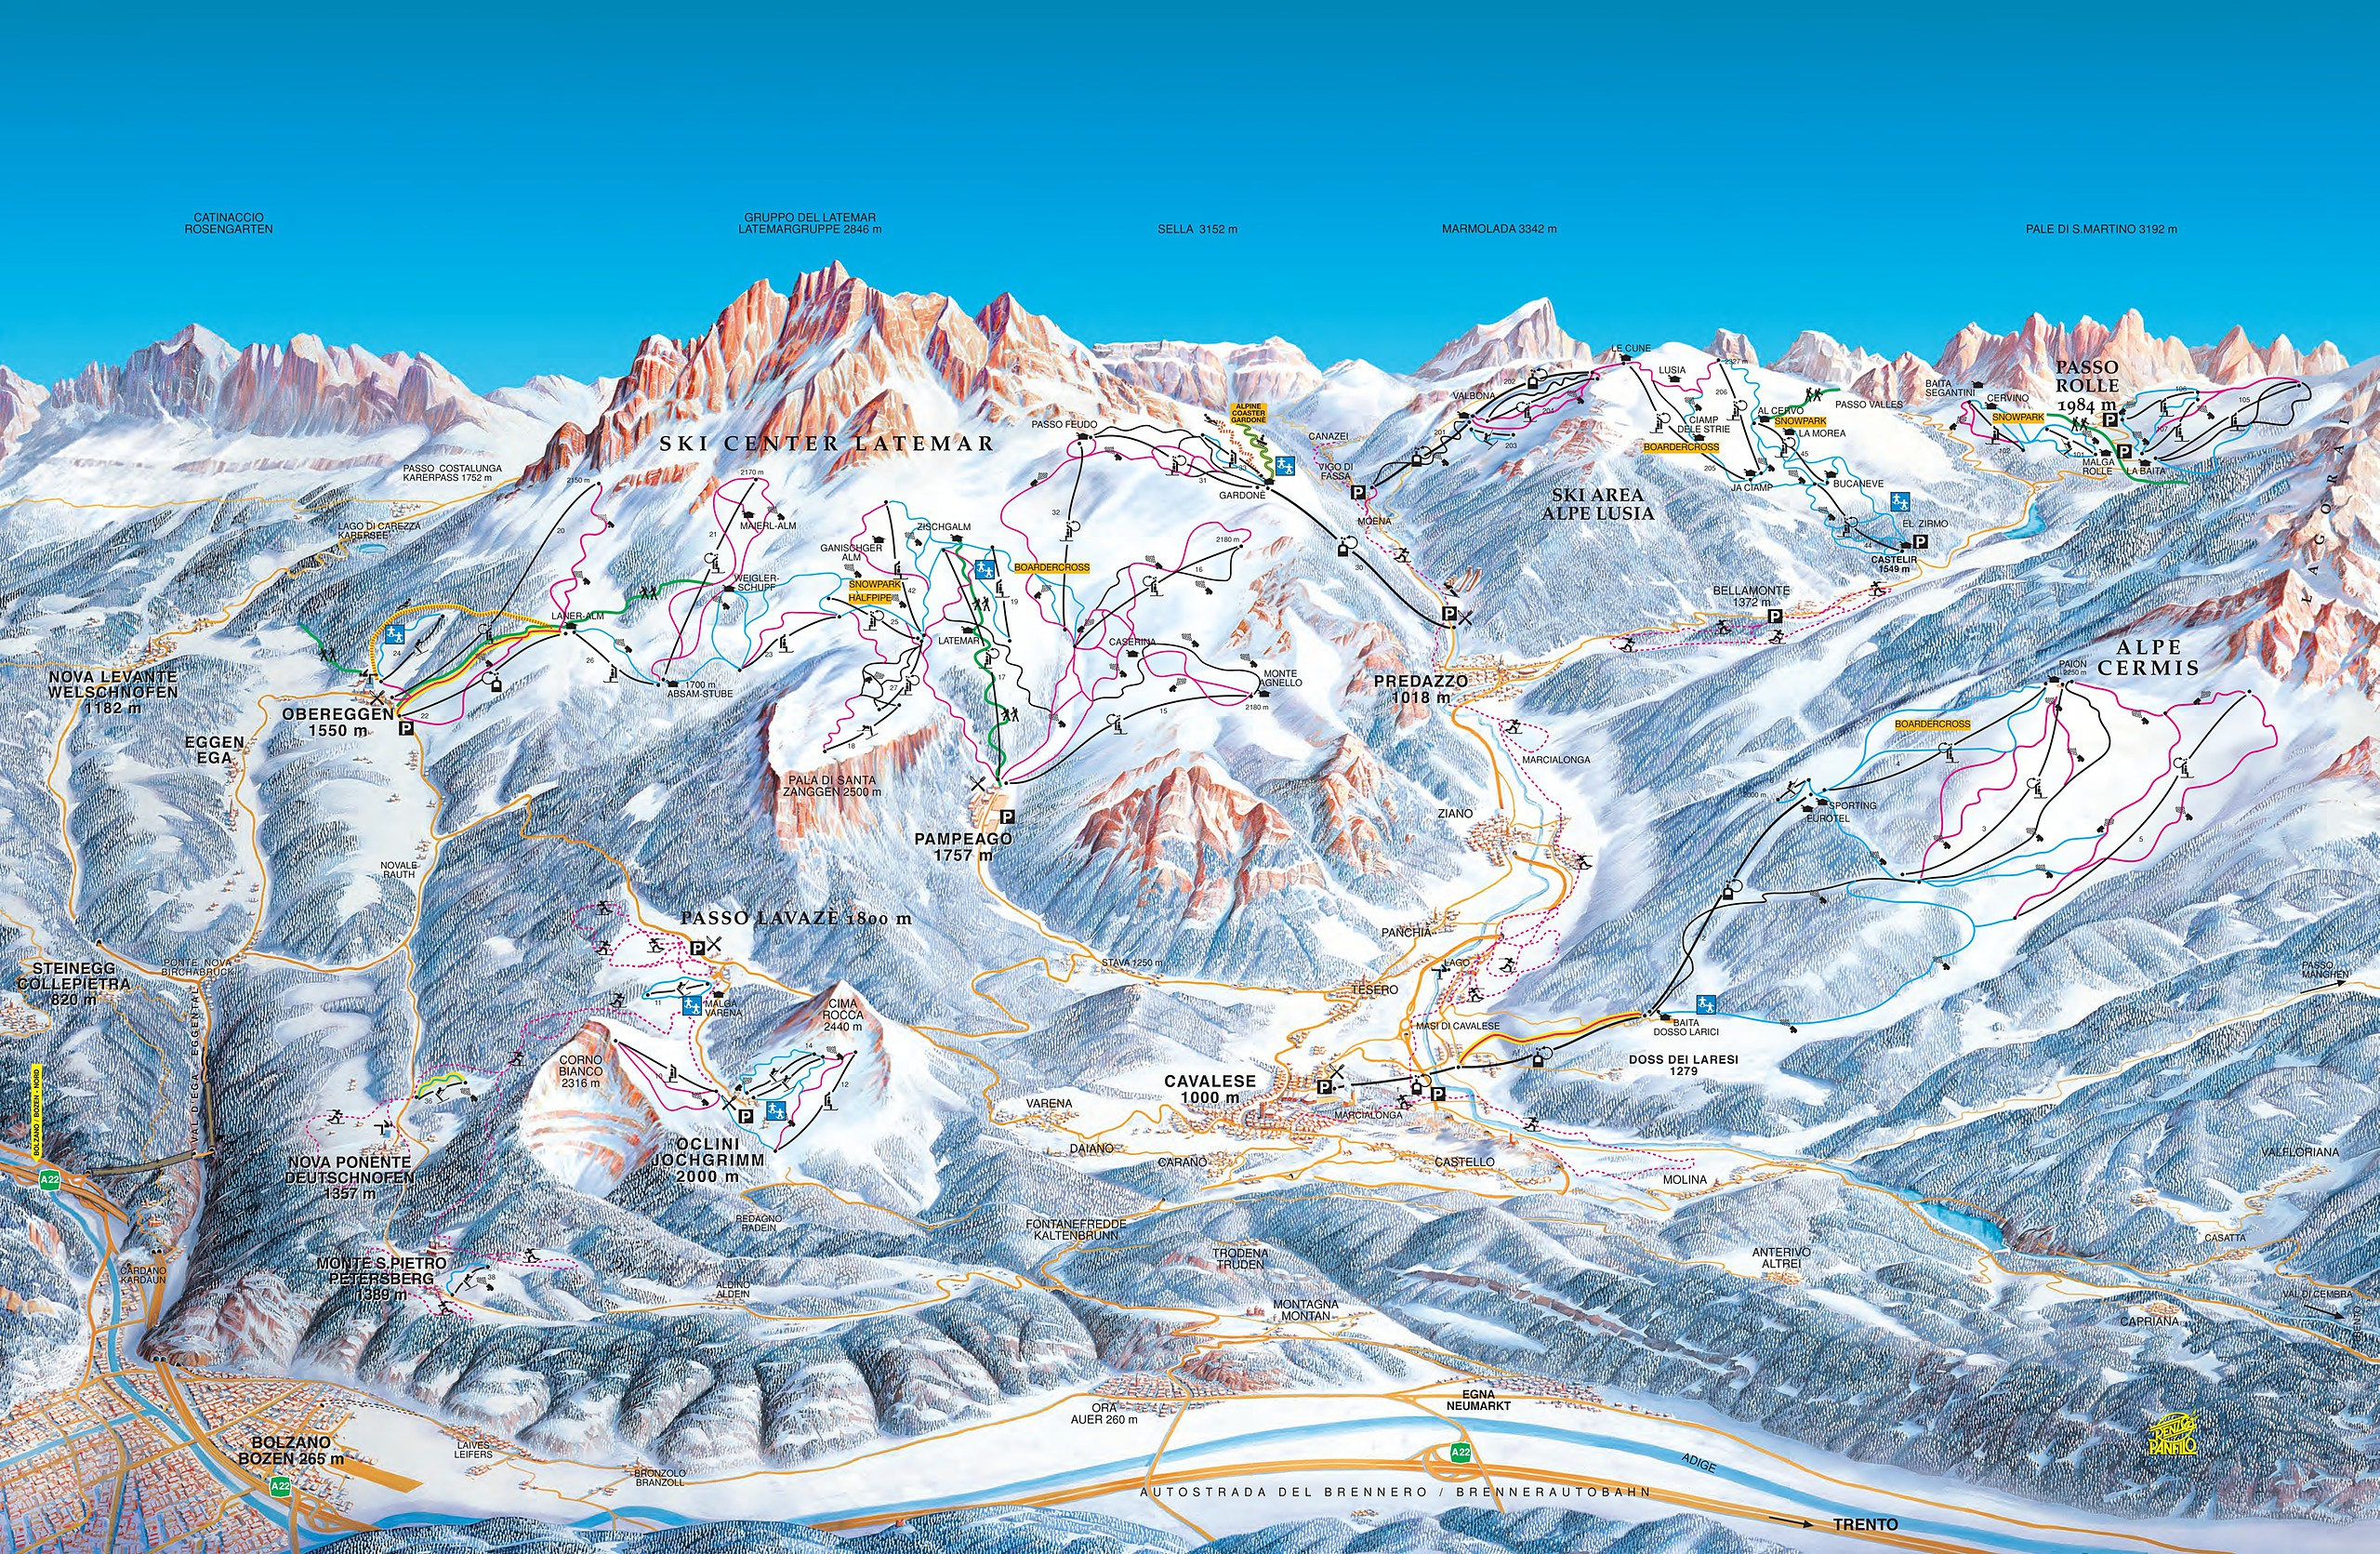 Map Of Ski Center Latemar - Obereggen